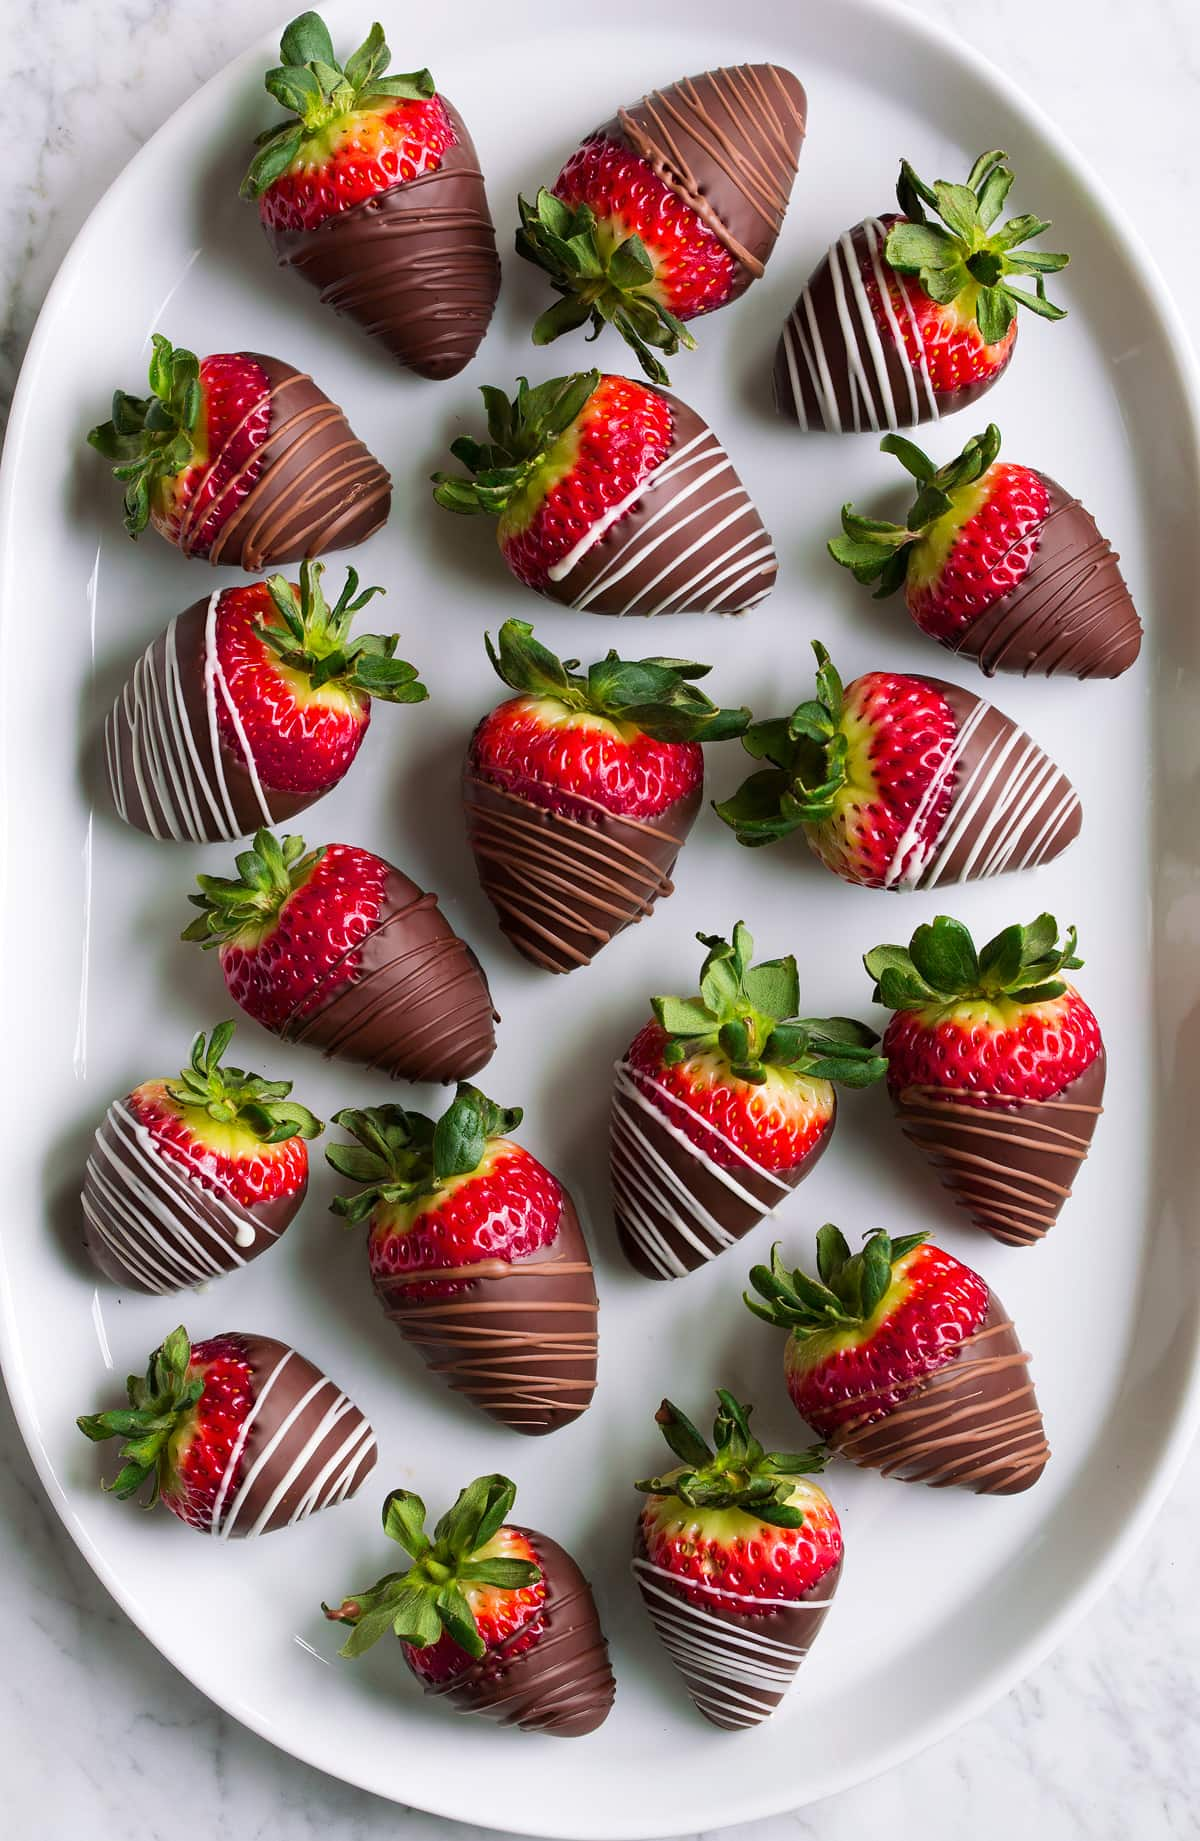 Chocolate dipped strawberries on an oval white platter.